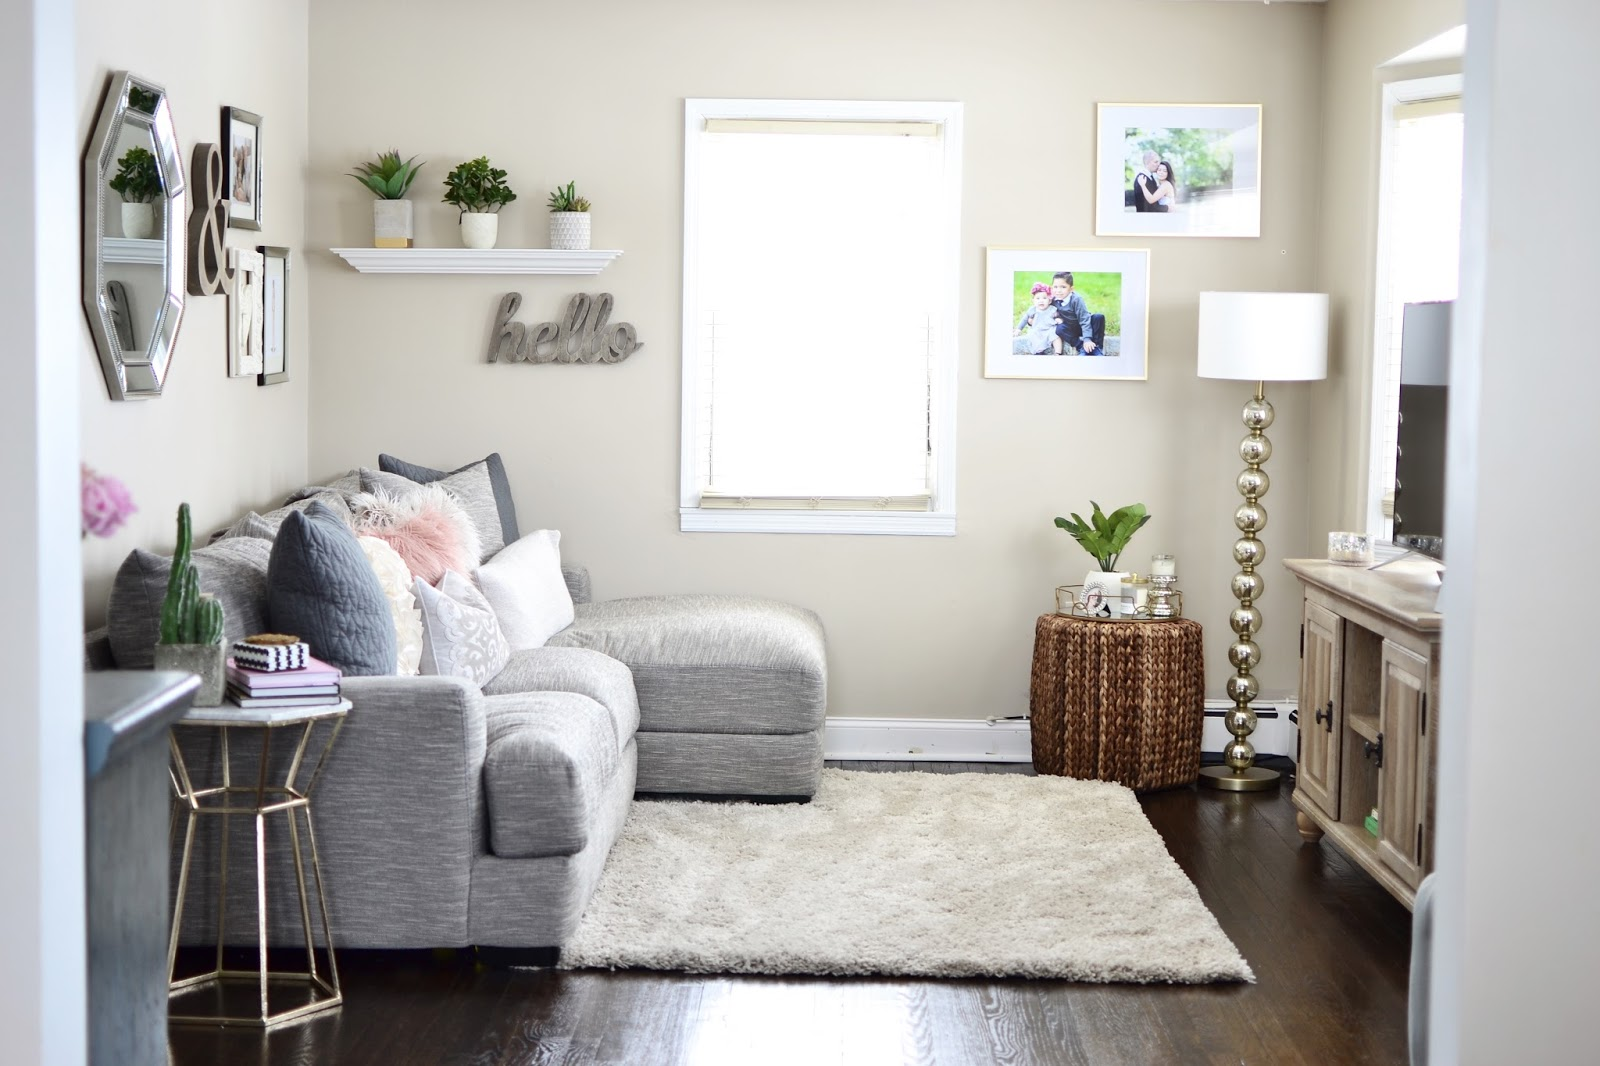 OUR LIVING ROOM TOUR   By Erika Batista